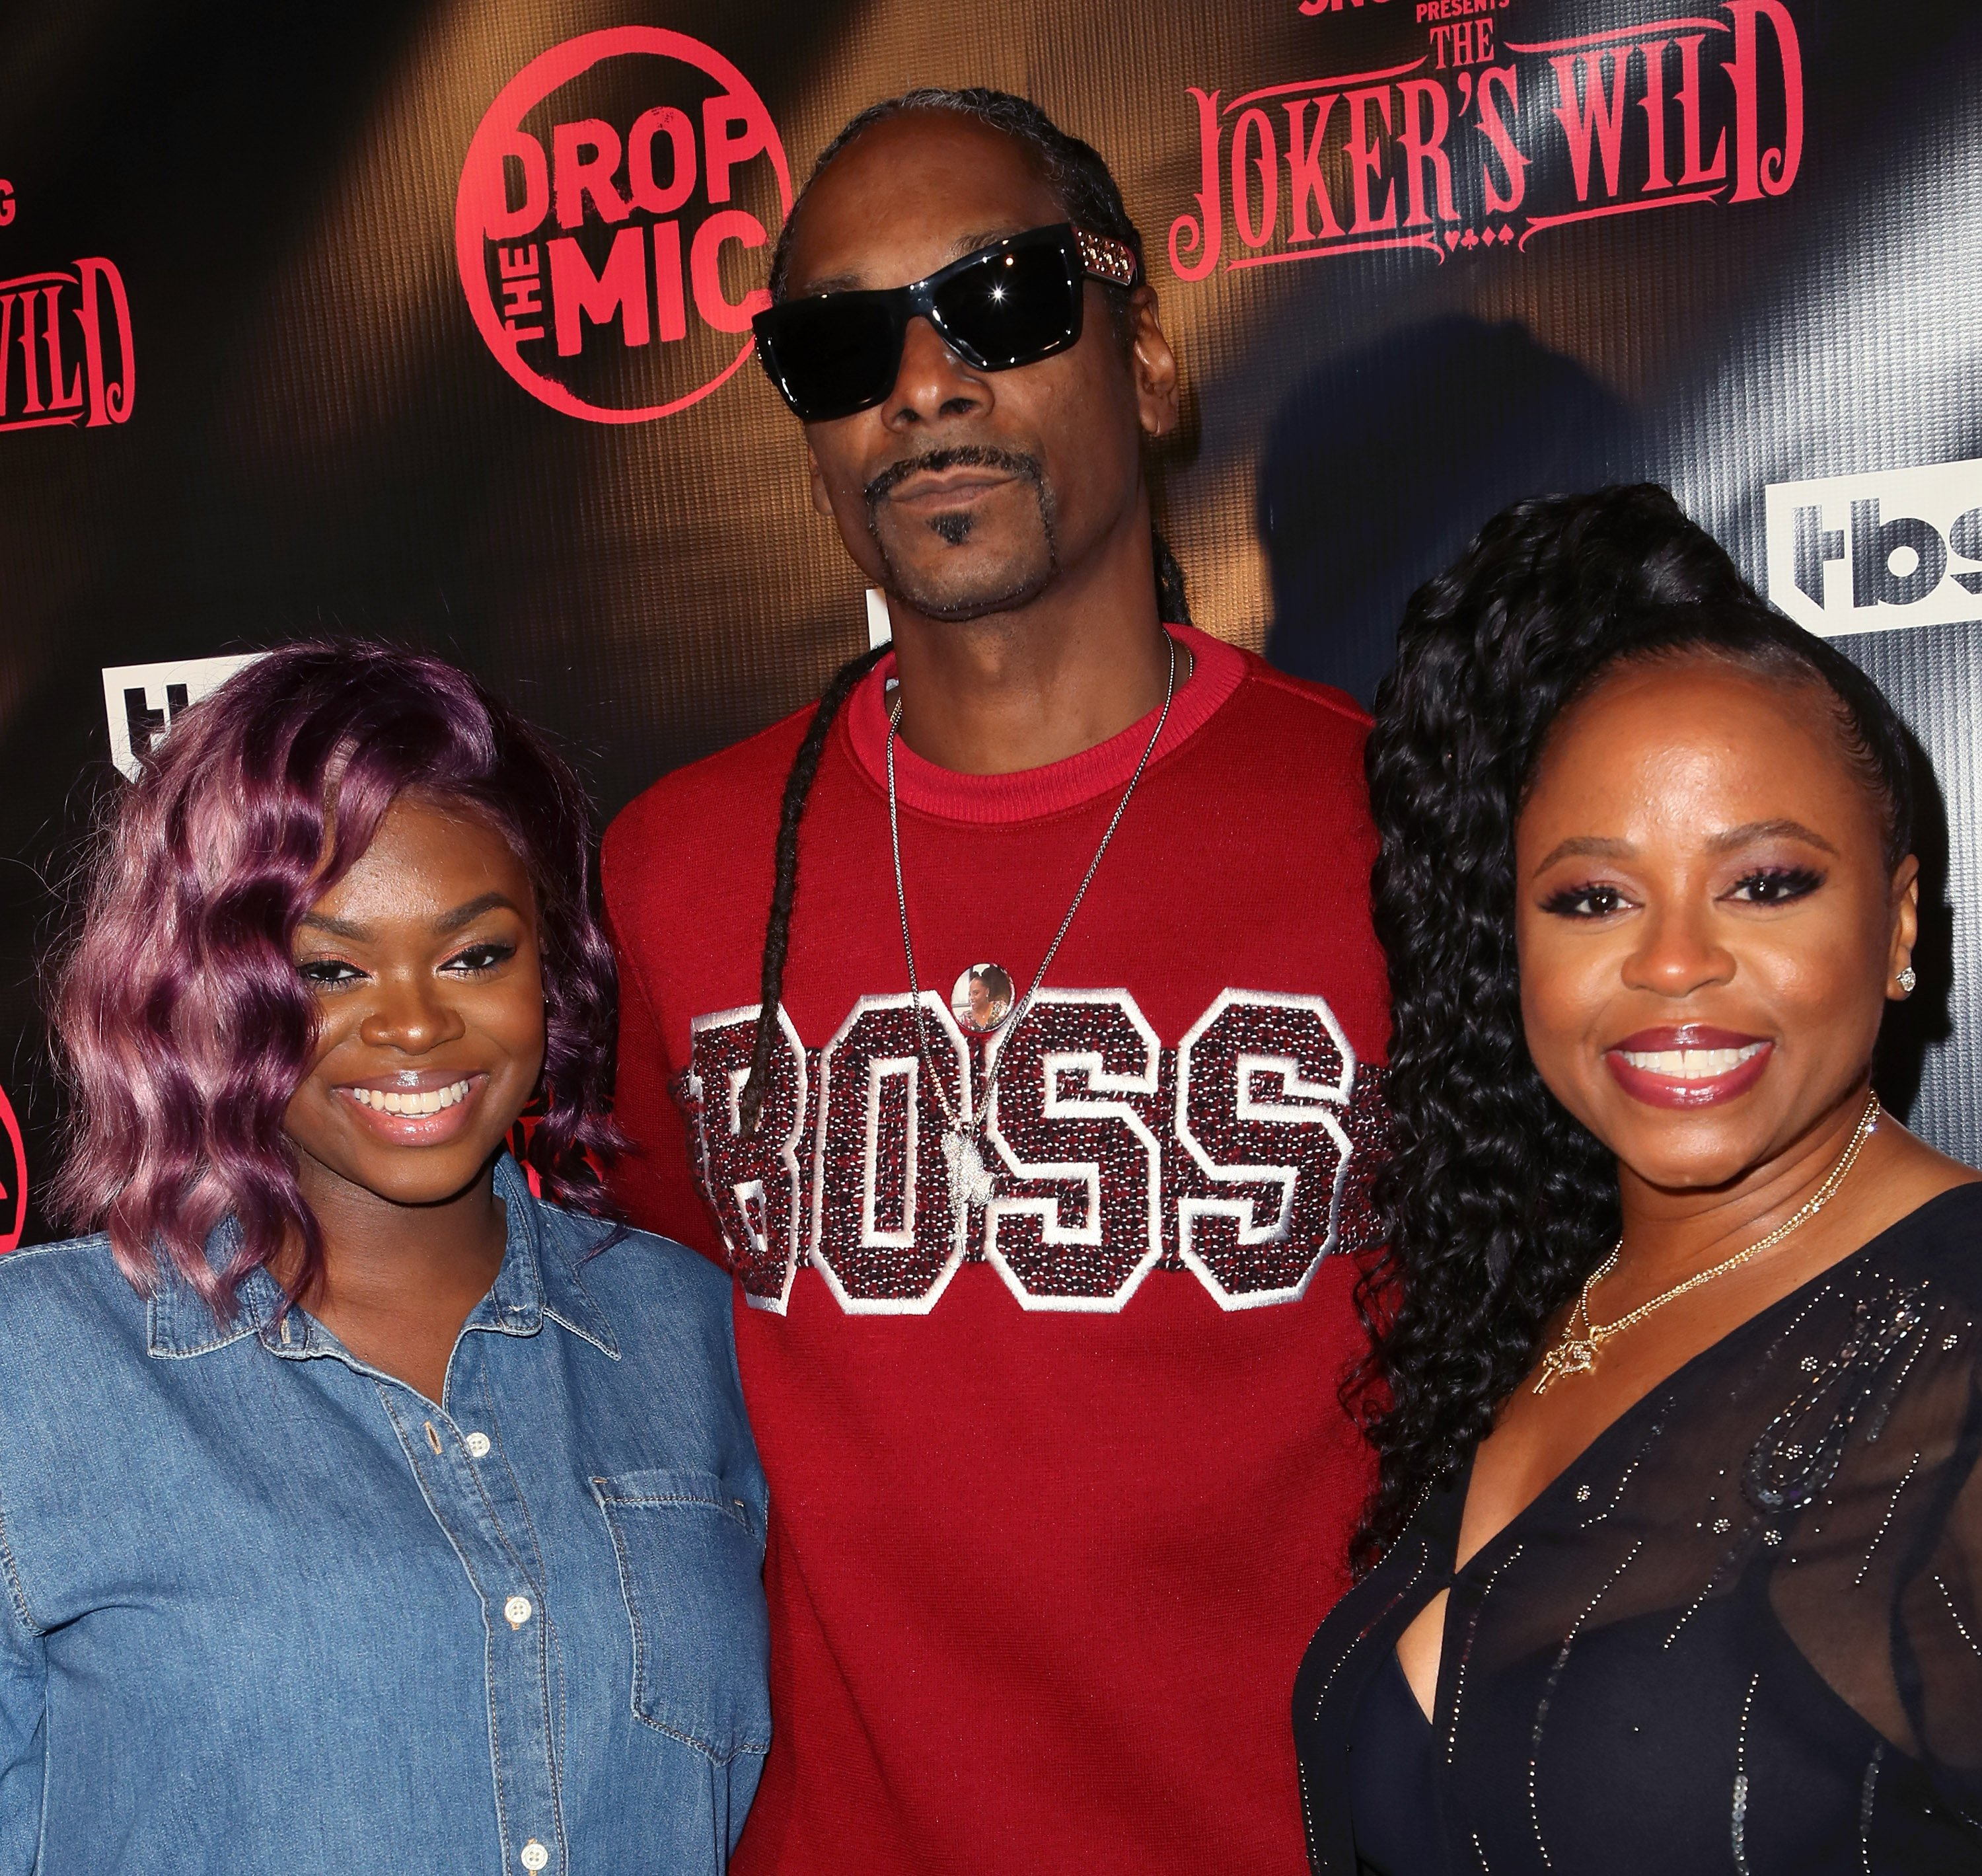 """Cori Broadus, Snoop Dogg, and Shante Broadus at the premiere for TBS's """"Drop The Mic"""" and """"The Joker's Wild"""" at The Highlight Room in Los Angeles, California 